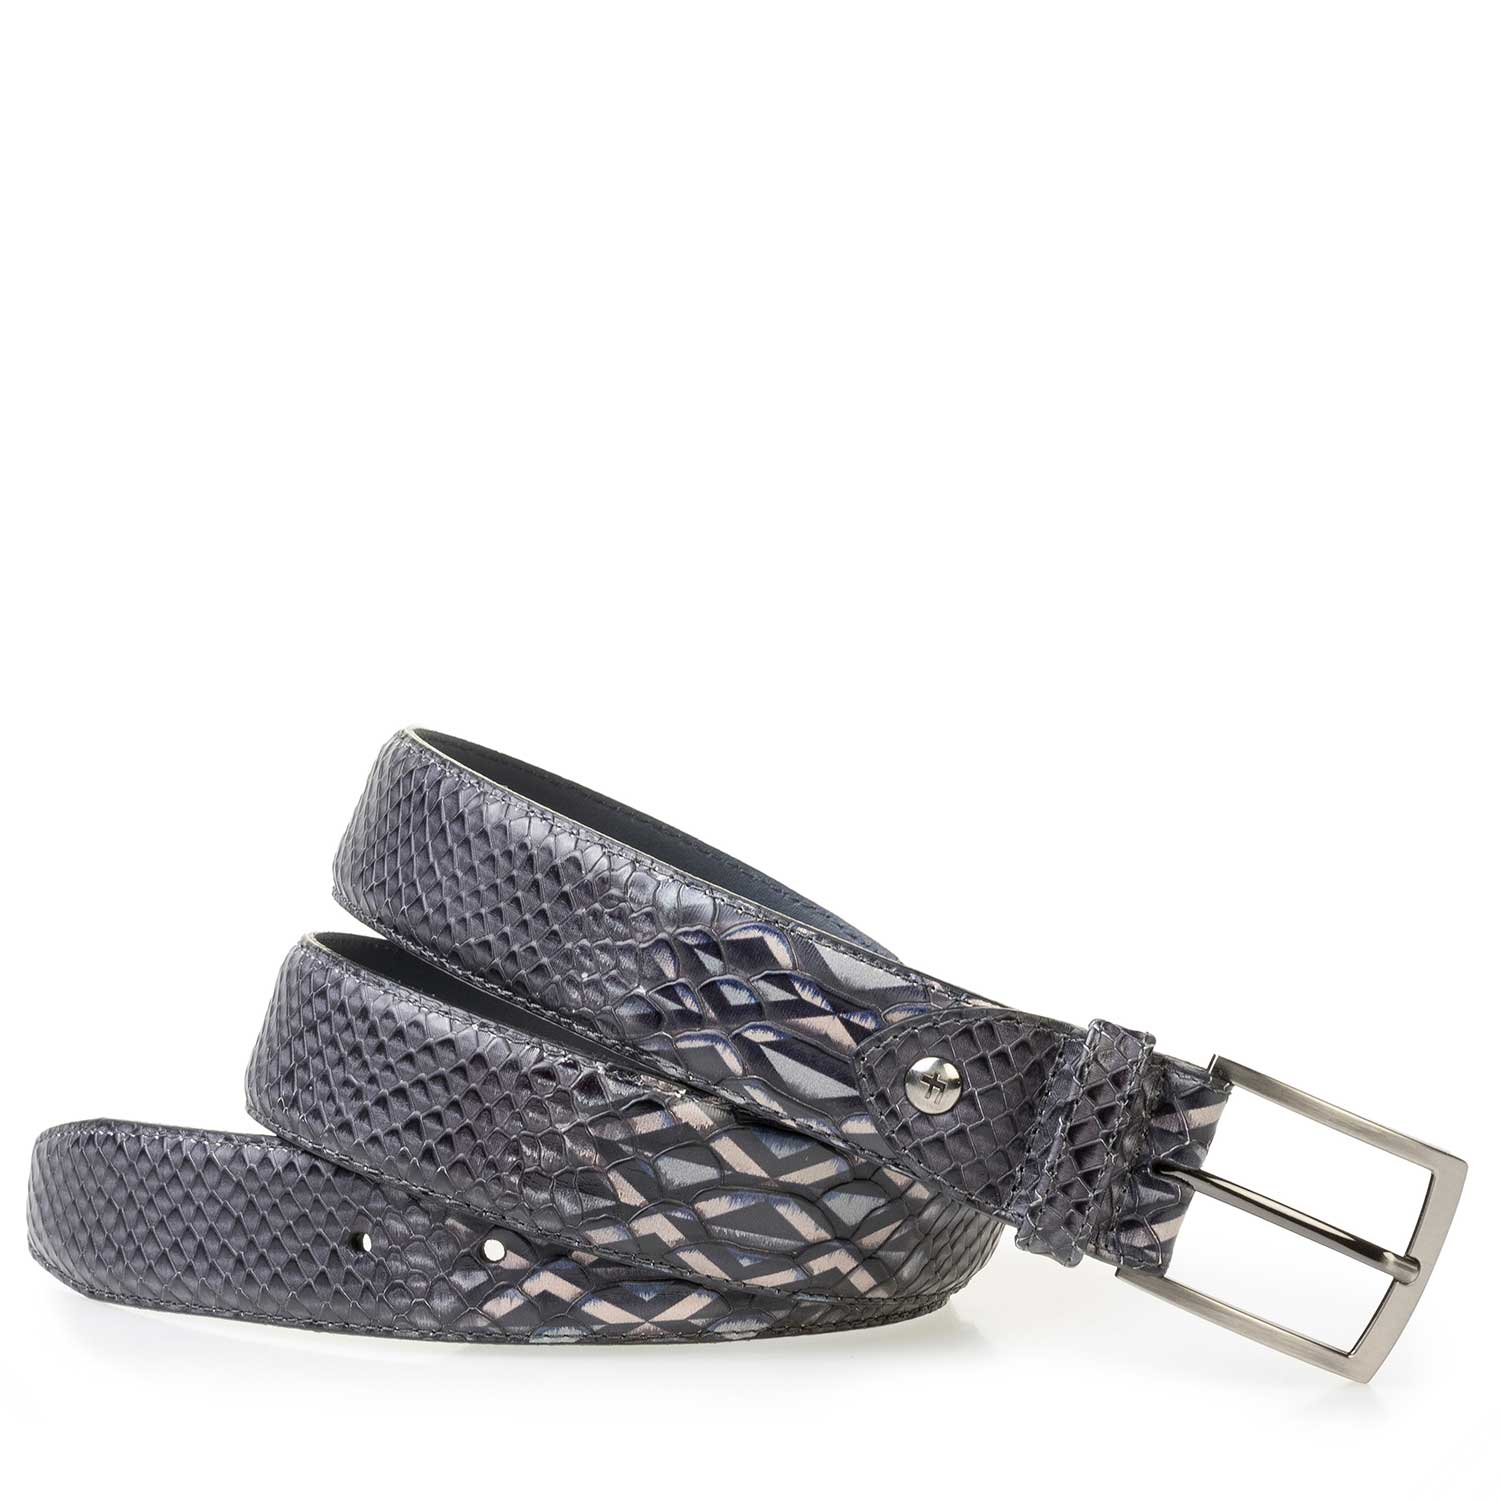 75200/28 - Grey calf leather belt with a pattern